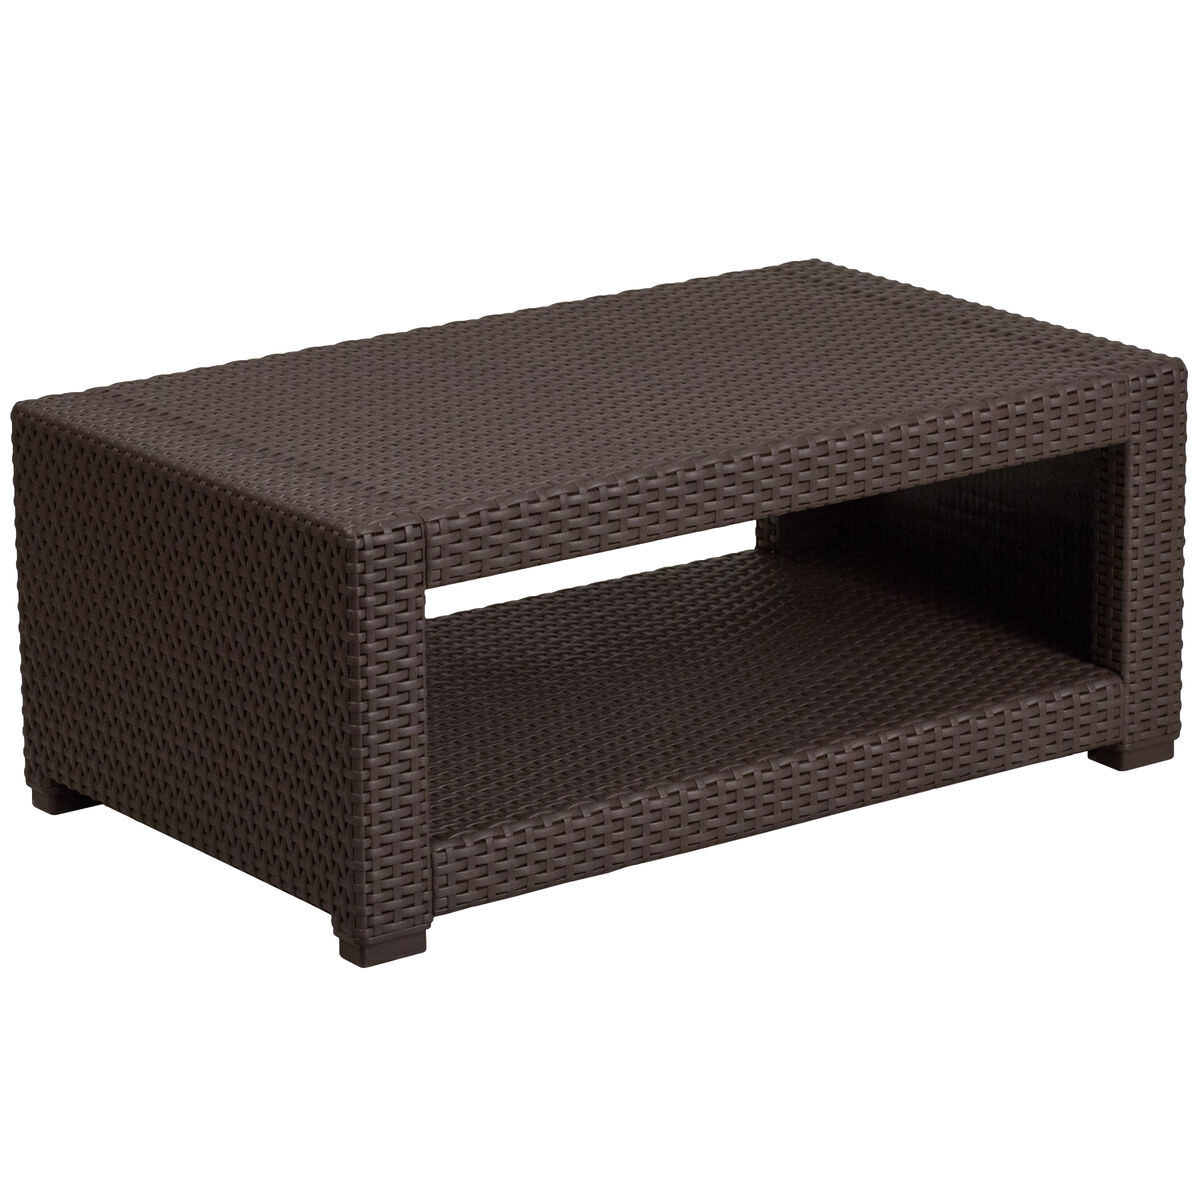 Our Chocolate Brown Faux Rattan Coffee Table Is On Now